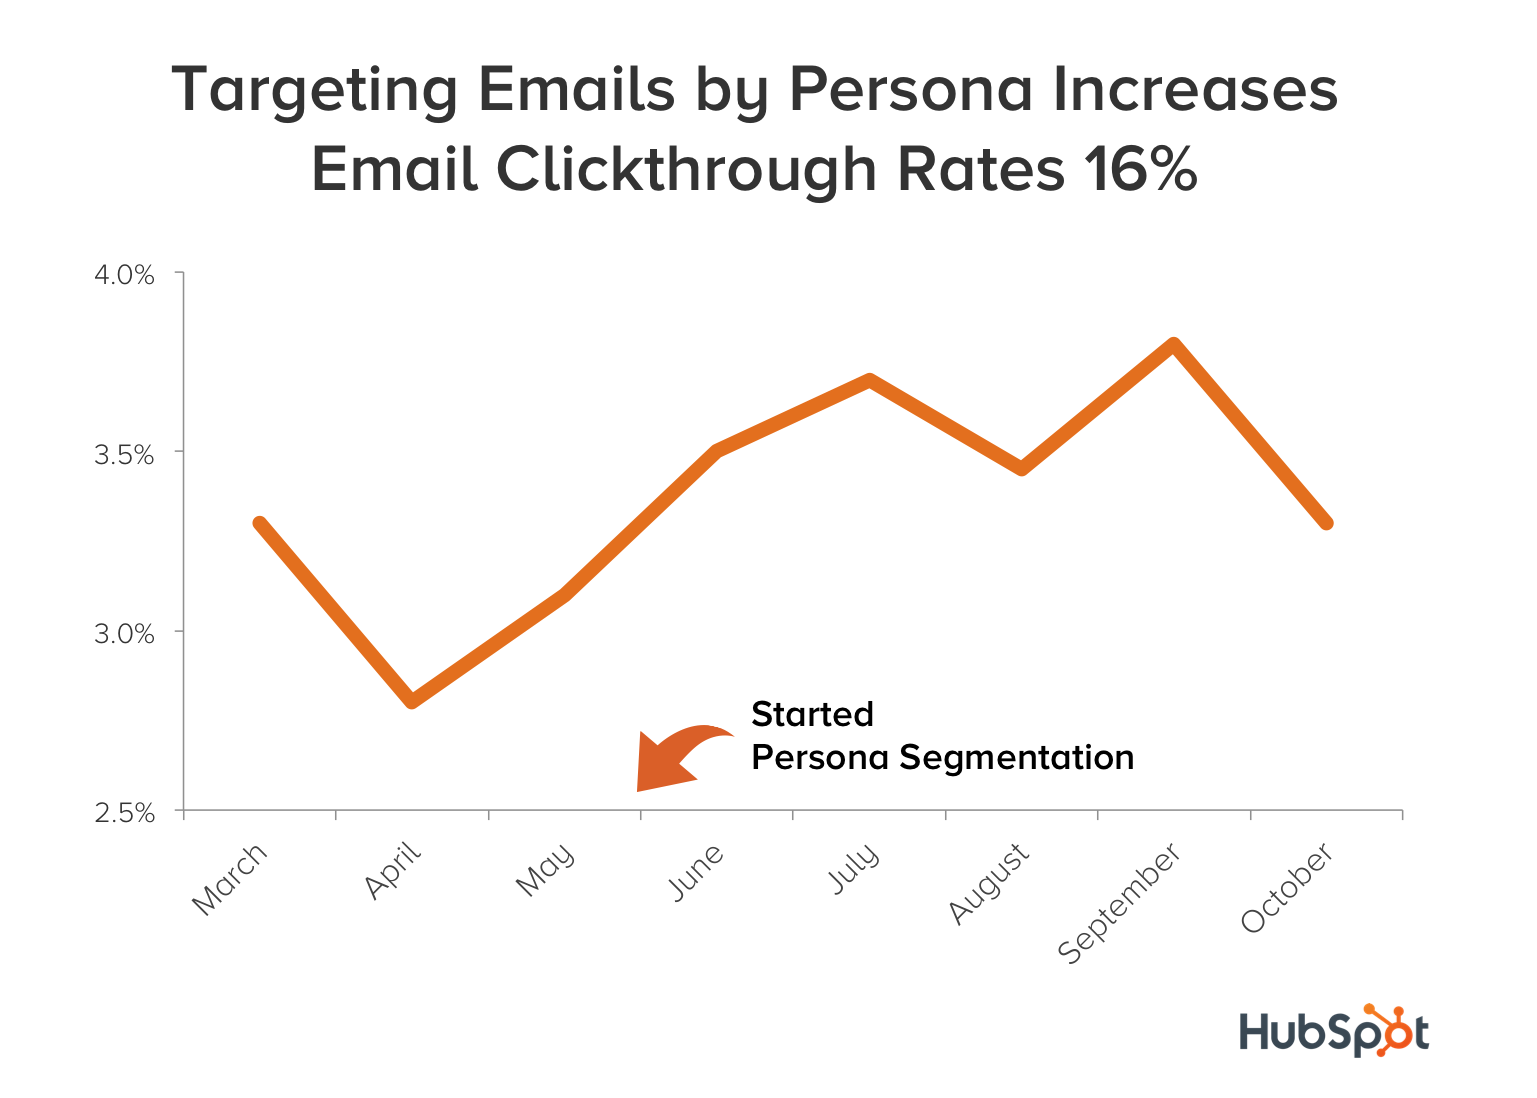 targeting-emails-by-persona-increases-email-clickthrough-rates-by-16-percent-2